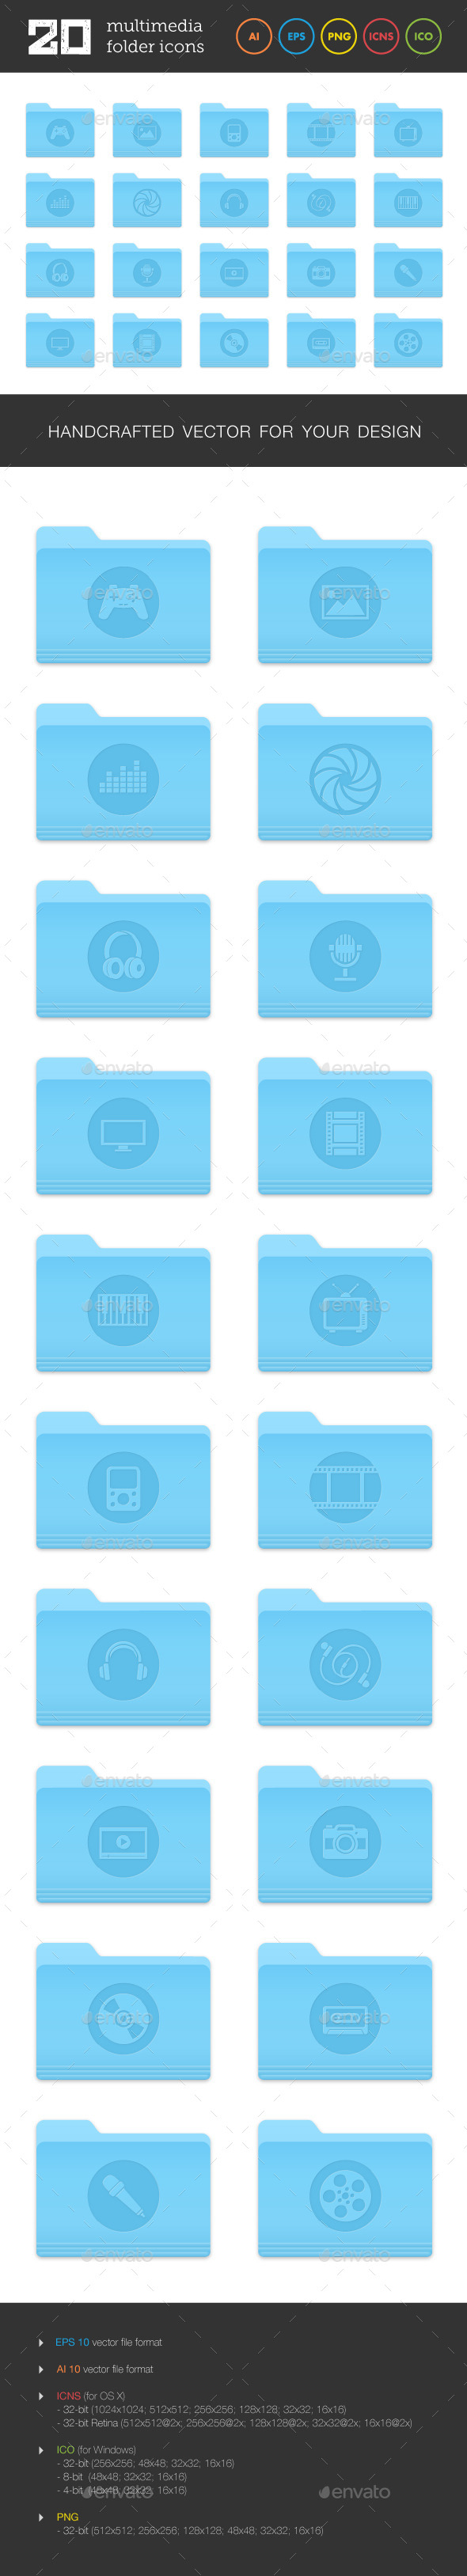 Multimedia Folder Icons Set 2 - Media Icons